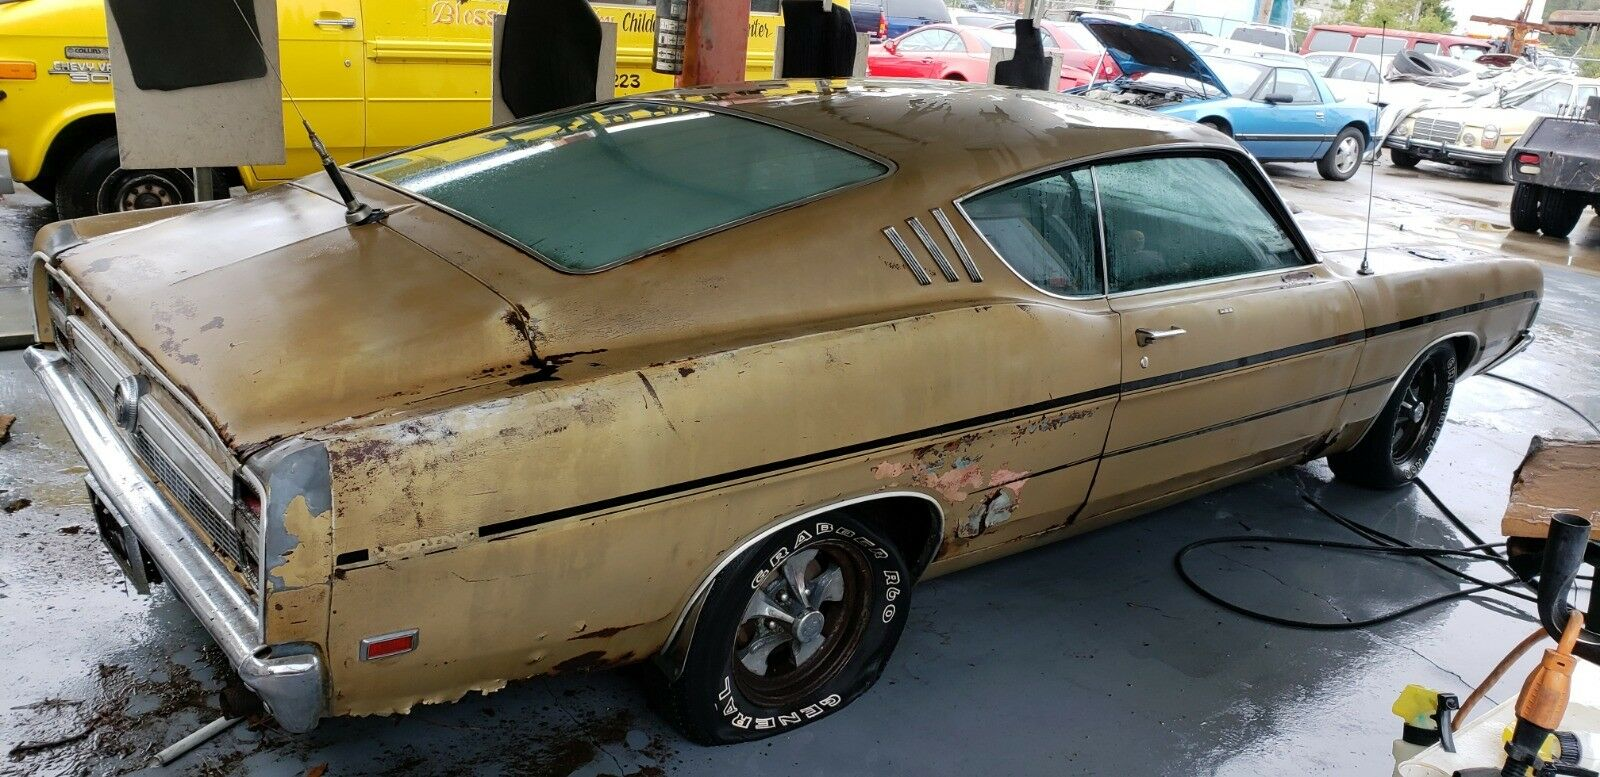 This Rotting 1969 Ford Torino GT Cobra Jet Could Sell for